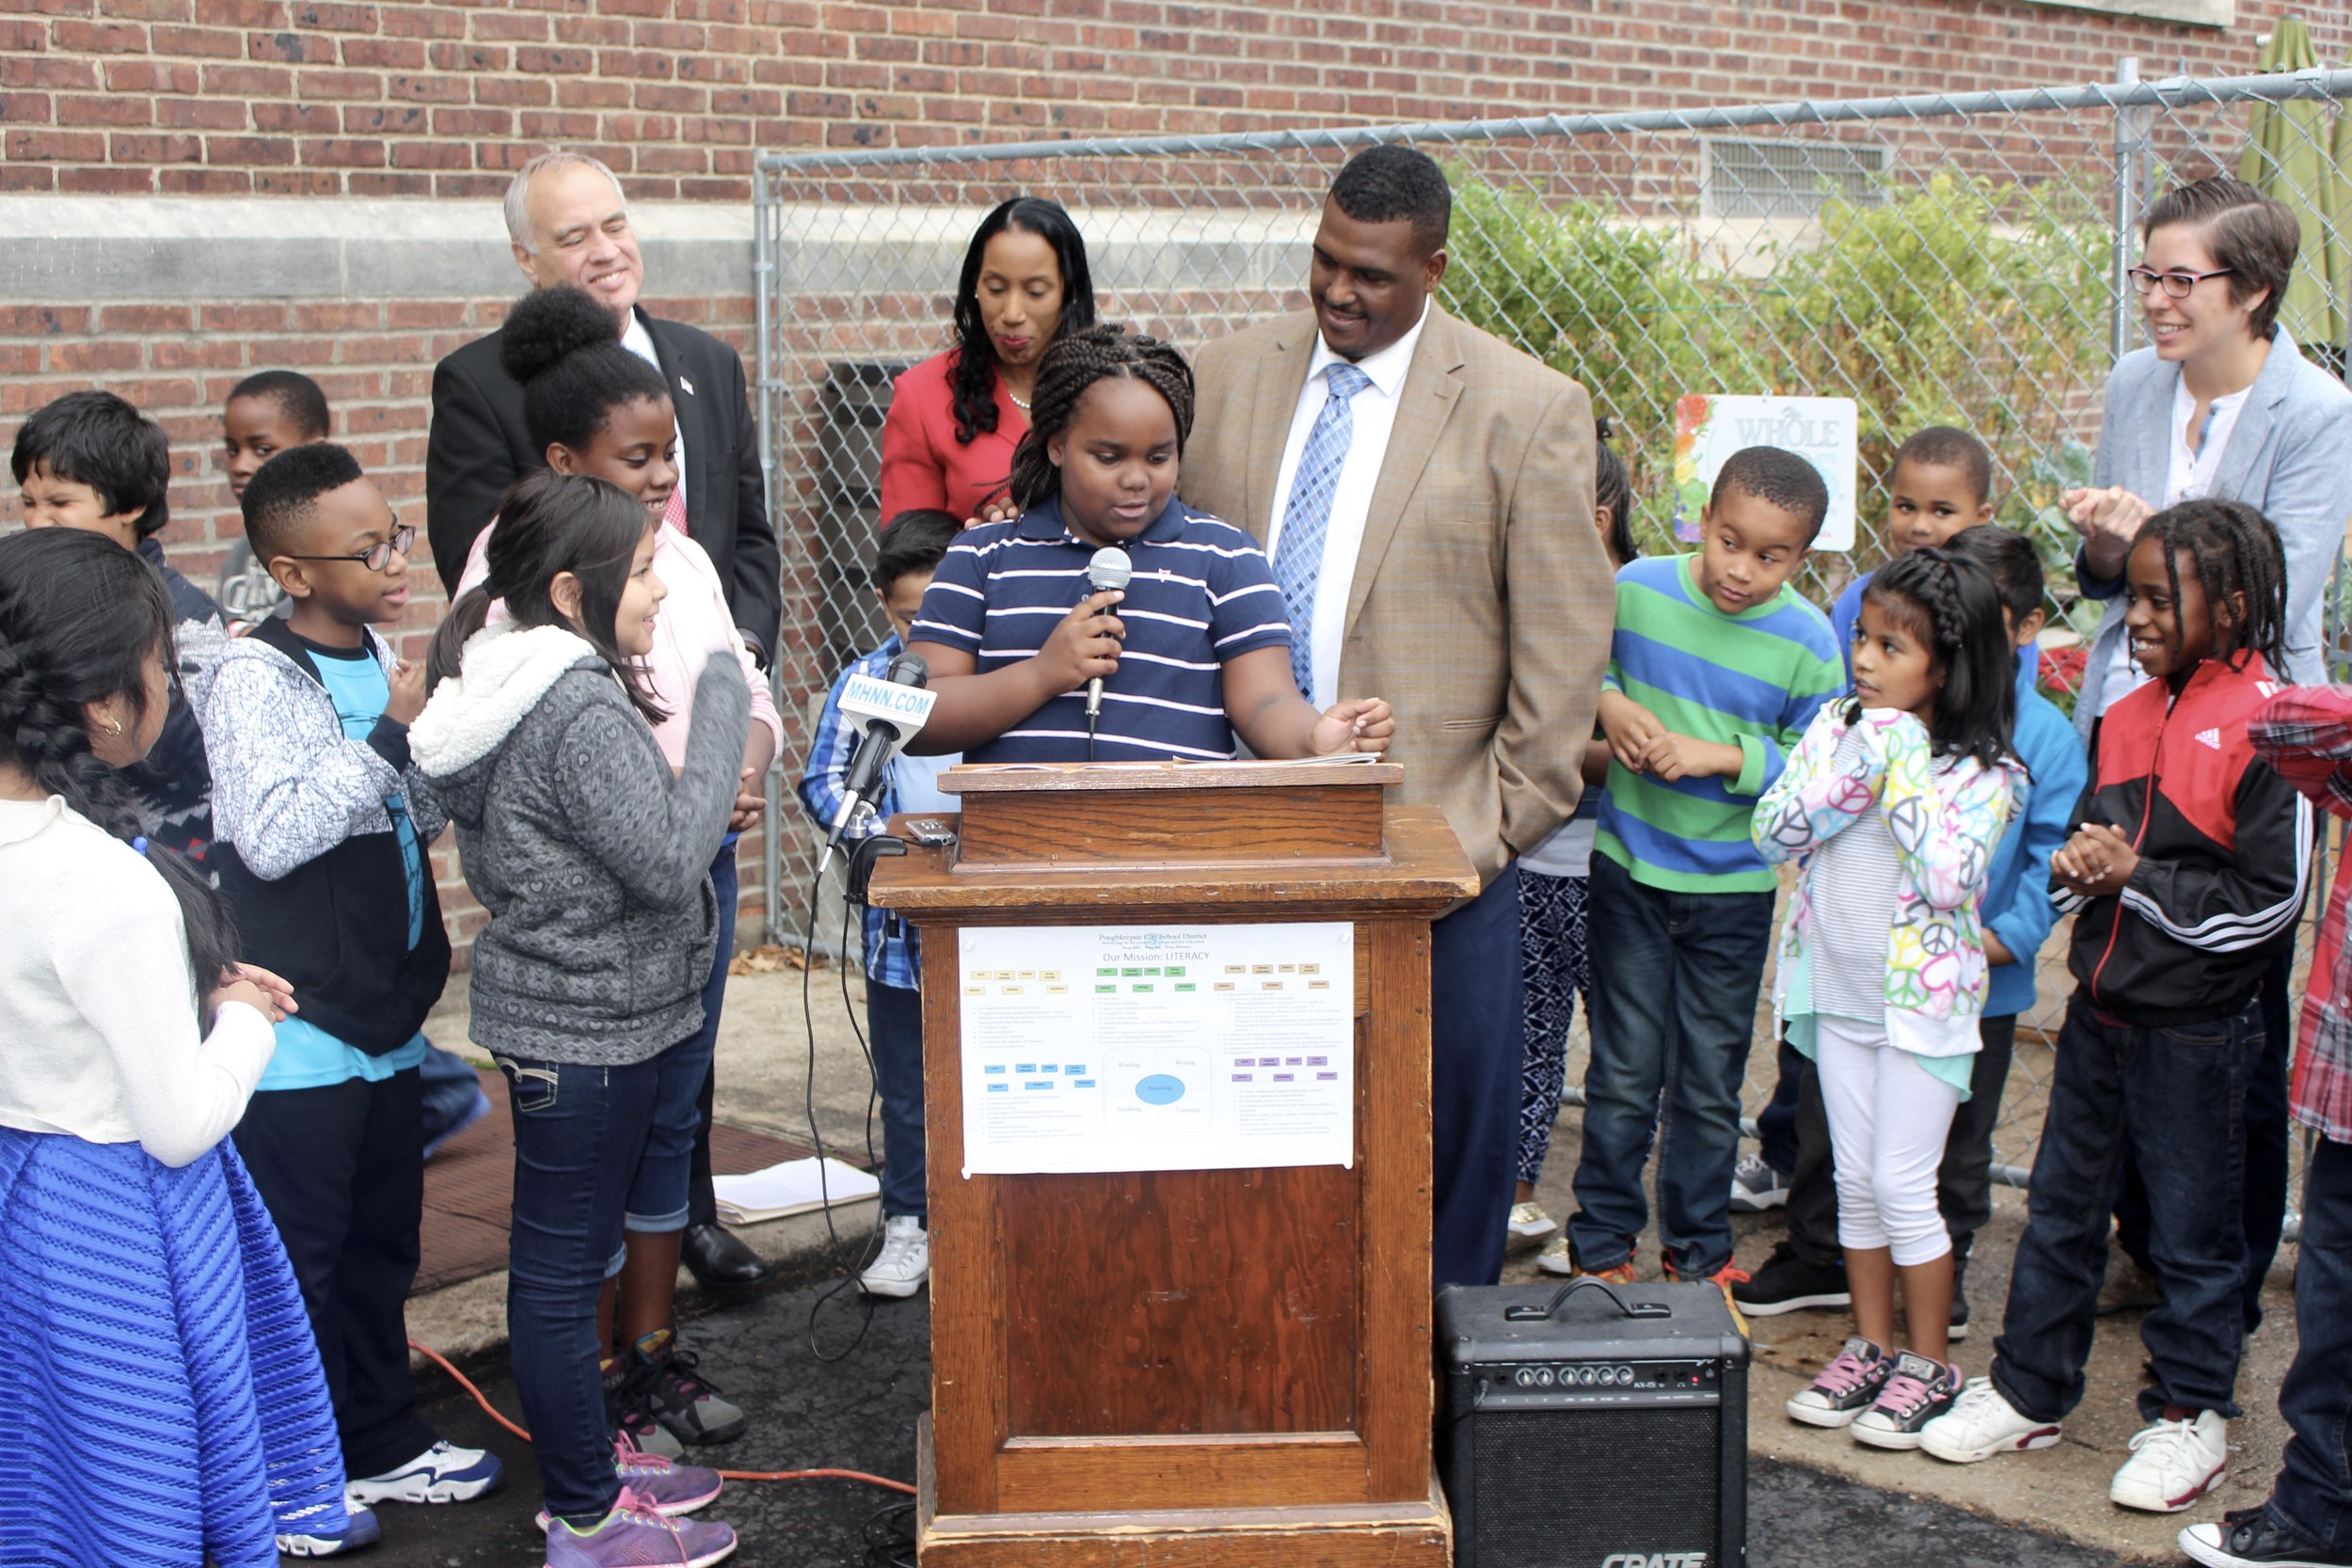 A 4th grader at Clinton School talks about building the school garden at the Comptroller's press conference.